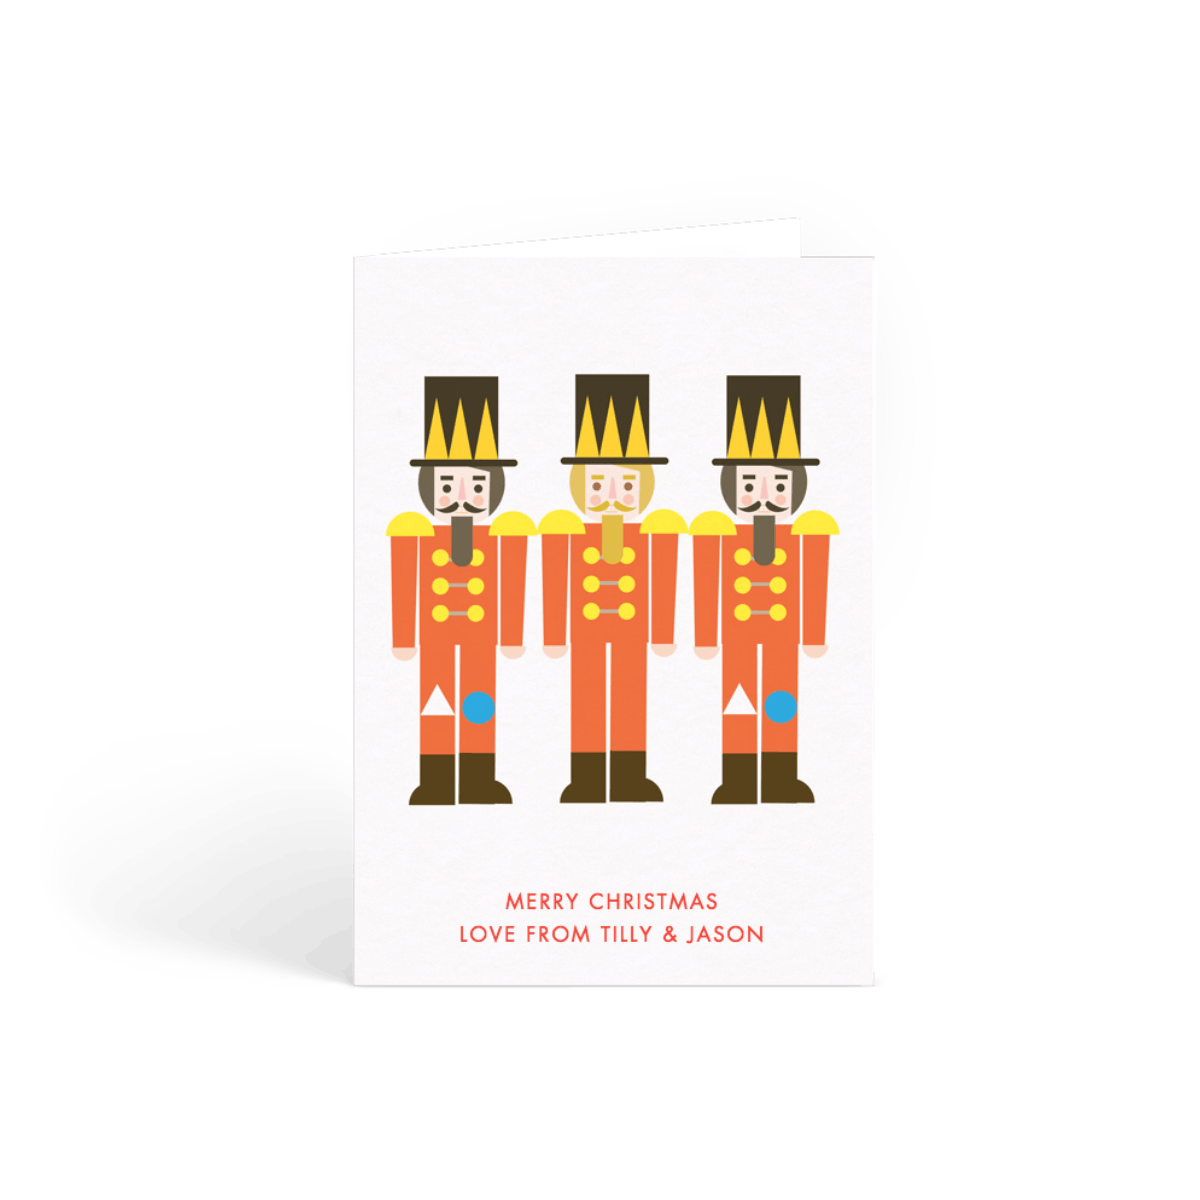 Https%3a%2f%2fwww.papier.com%2fproduct image%2f31231%2f2%2fchristmas nutcrackers 7844 front 1541413437.png?ixlib=rb 1.1